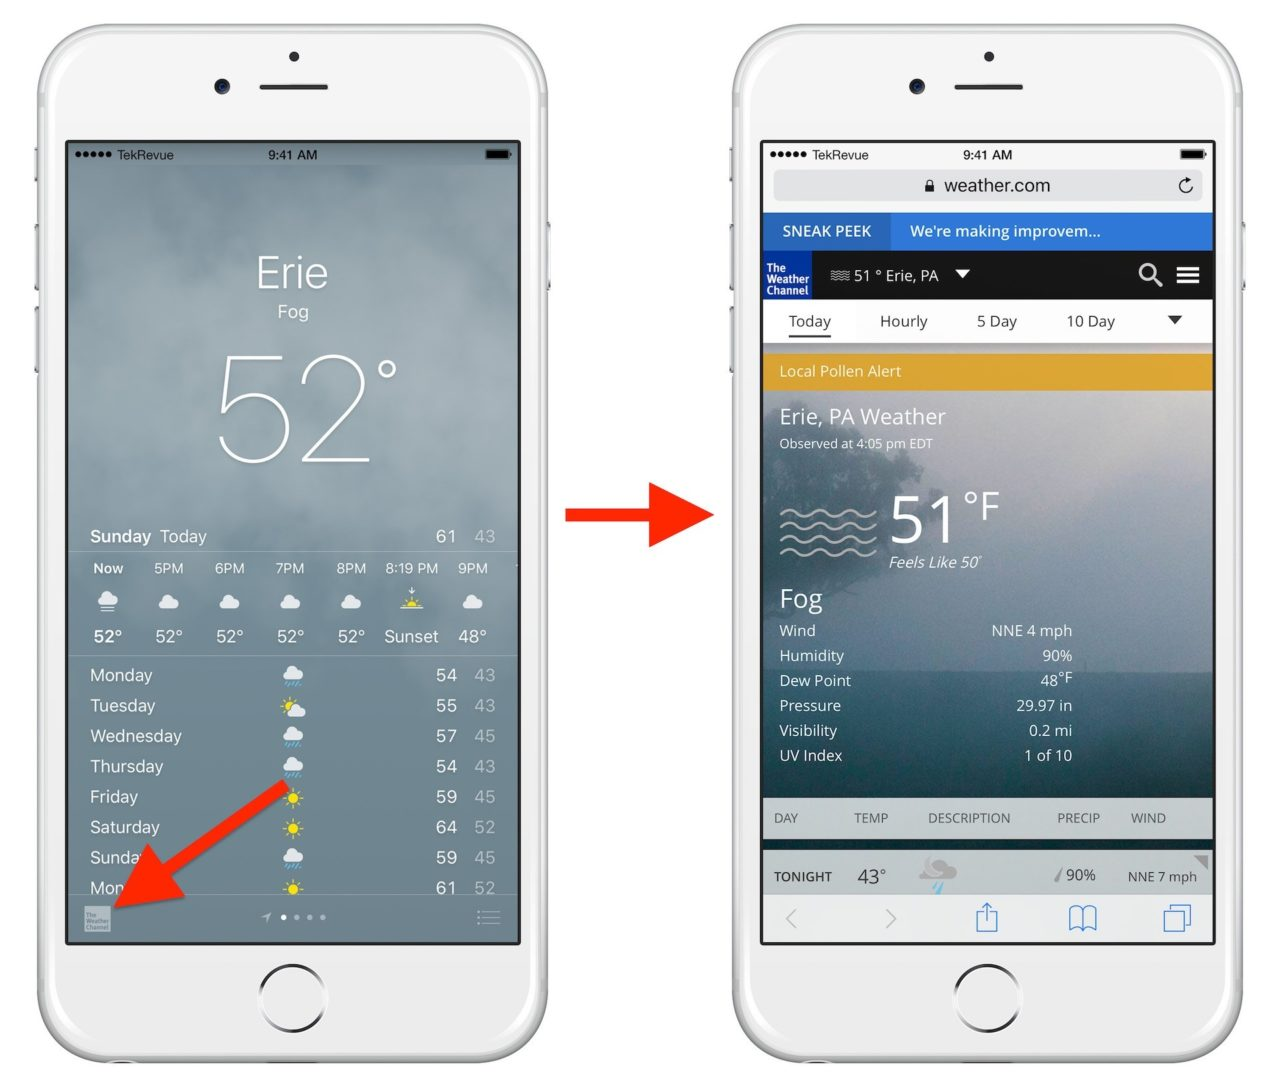 Get a City's Full Weather Channel Forecast From Within the